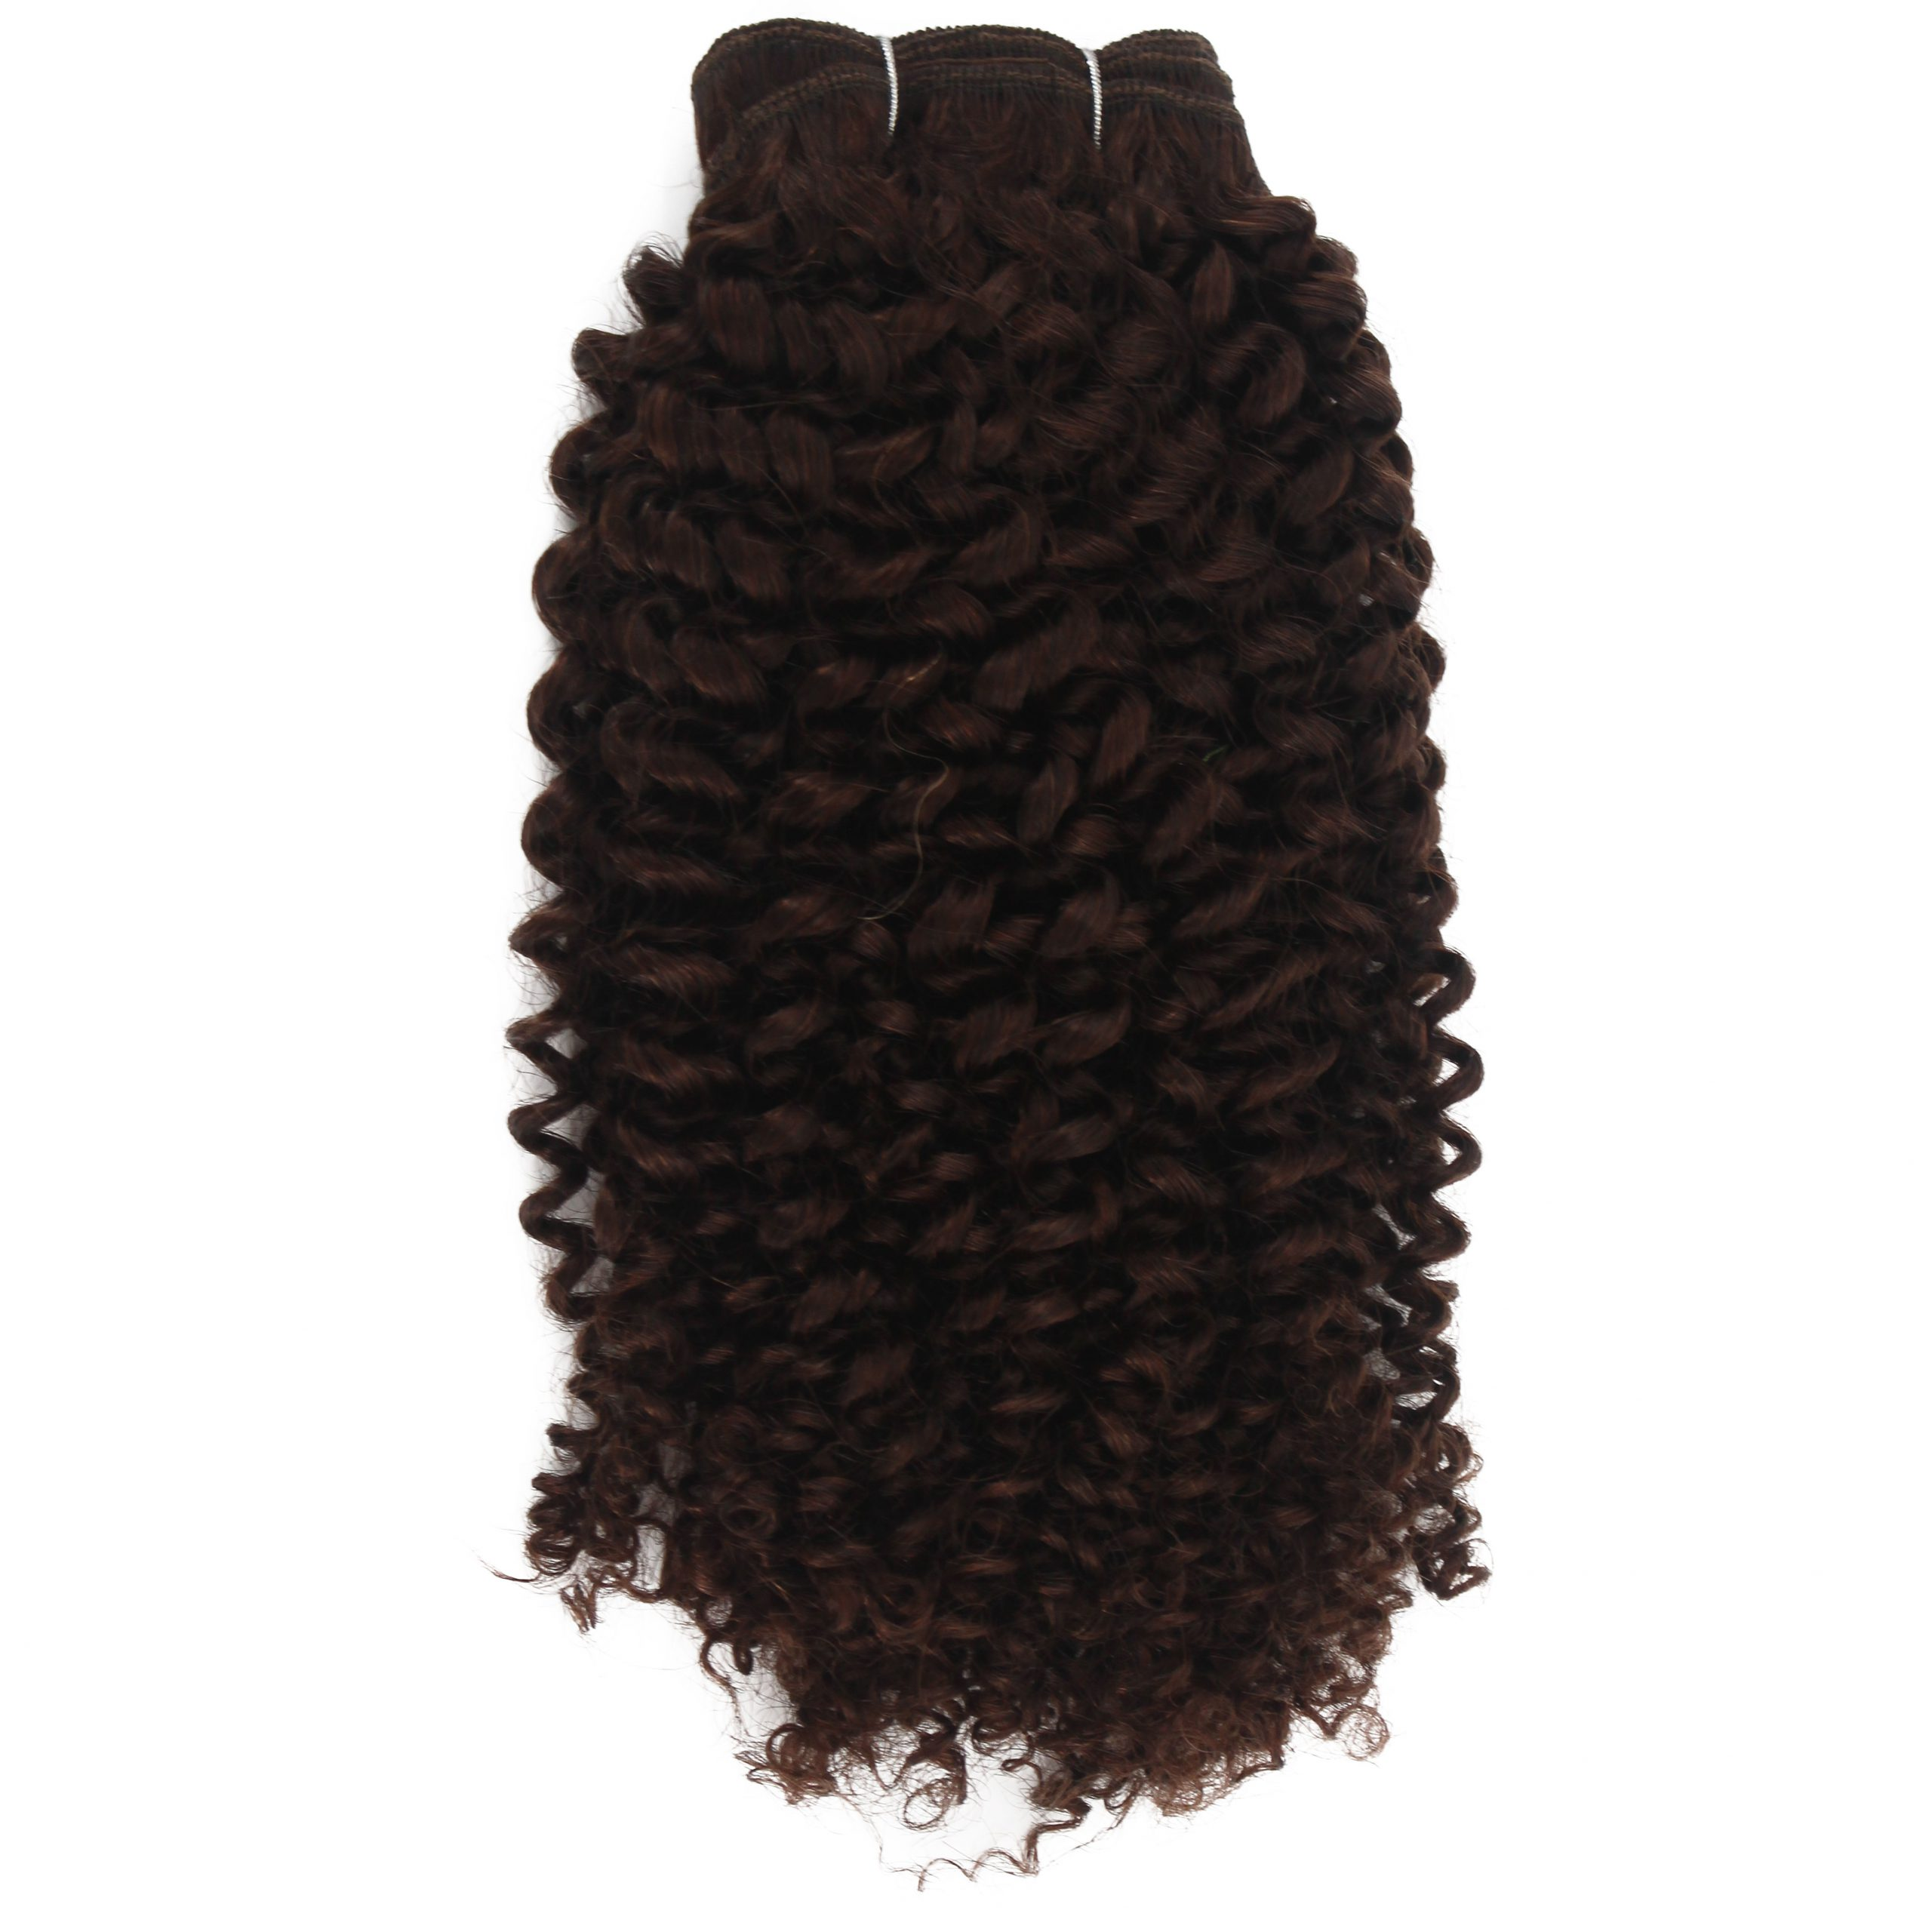 JERRY CURL 8 Inch - 2 Jerry Curl